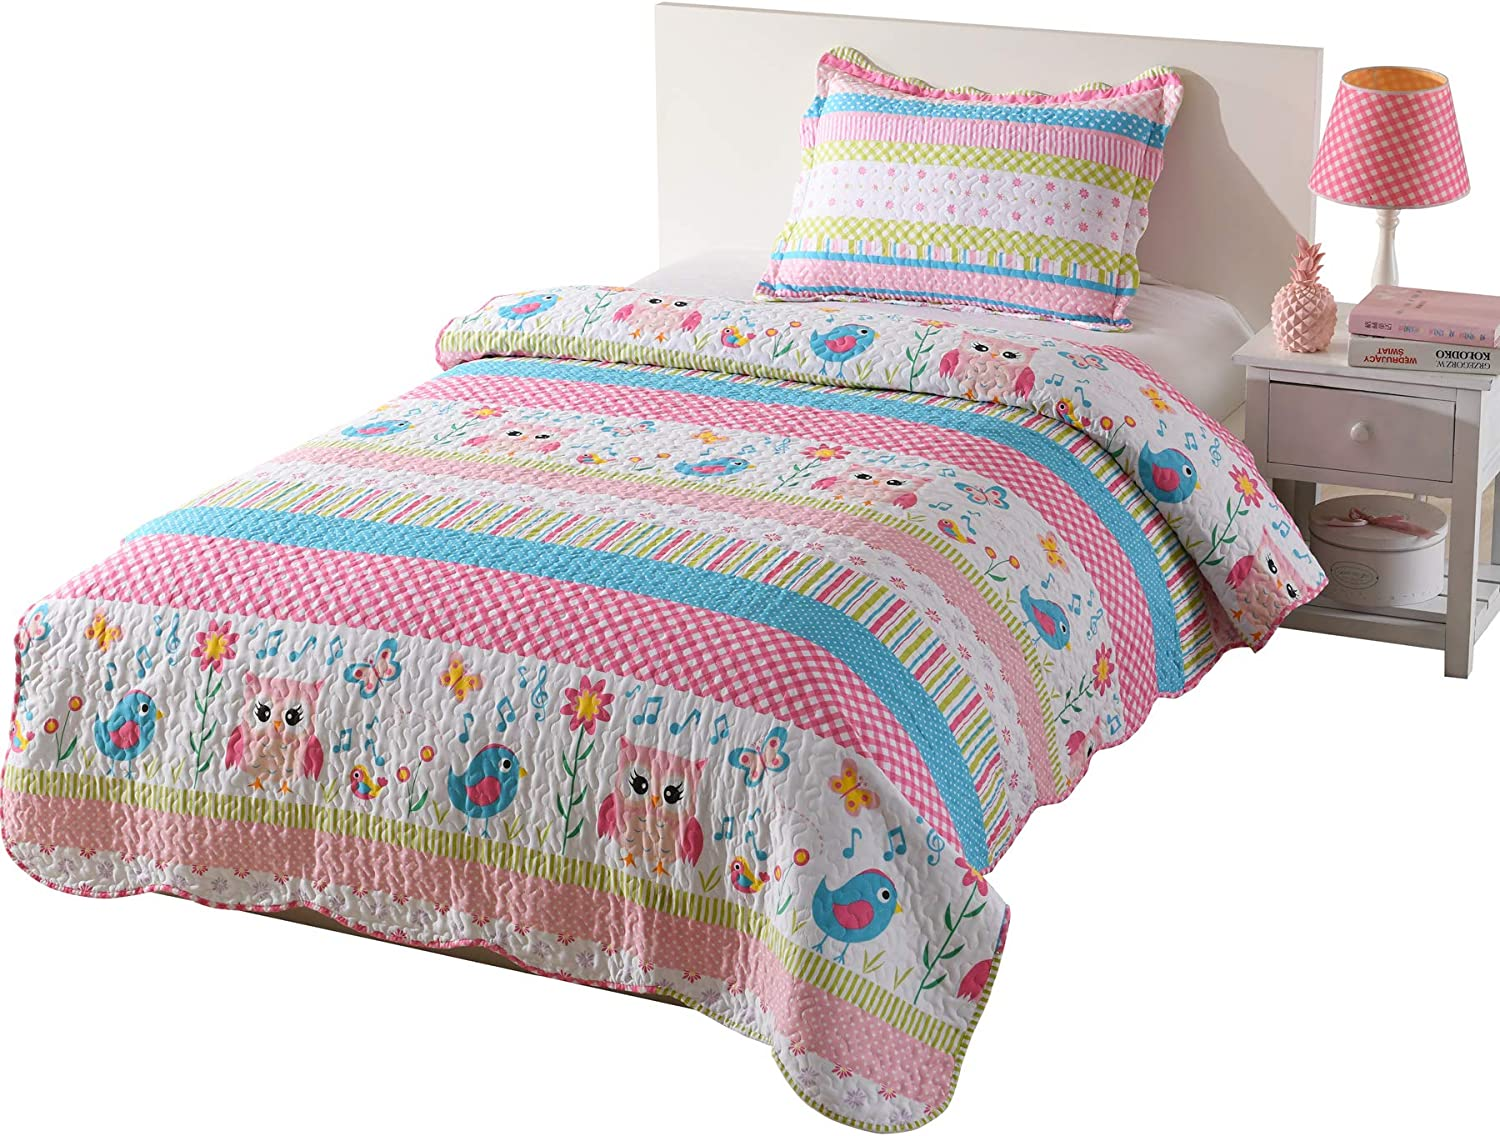 MarCielo 2 Piece Kids Bedspread Quilts Tee Financial sales Recommended sale Throw for Blanket Set